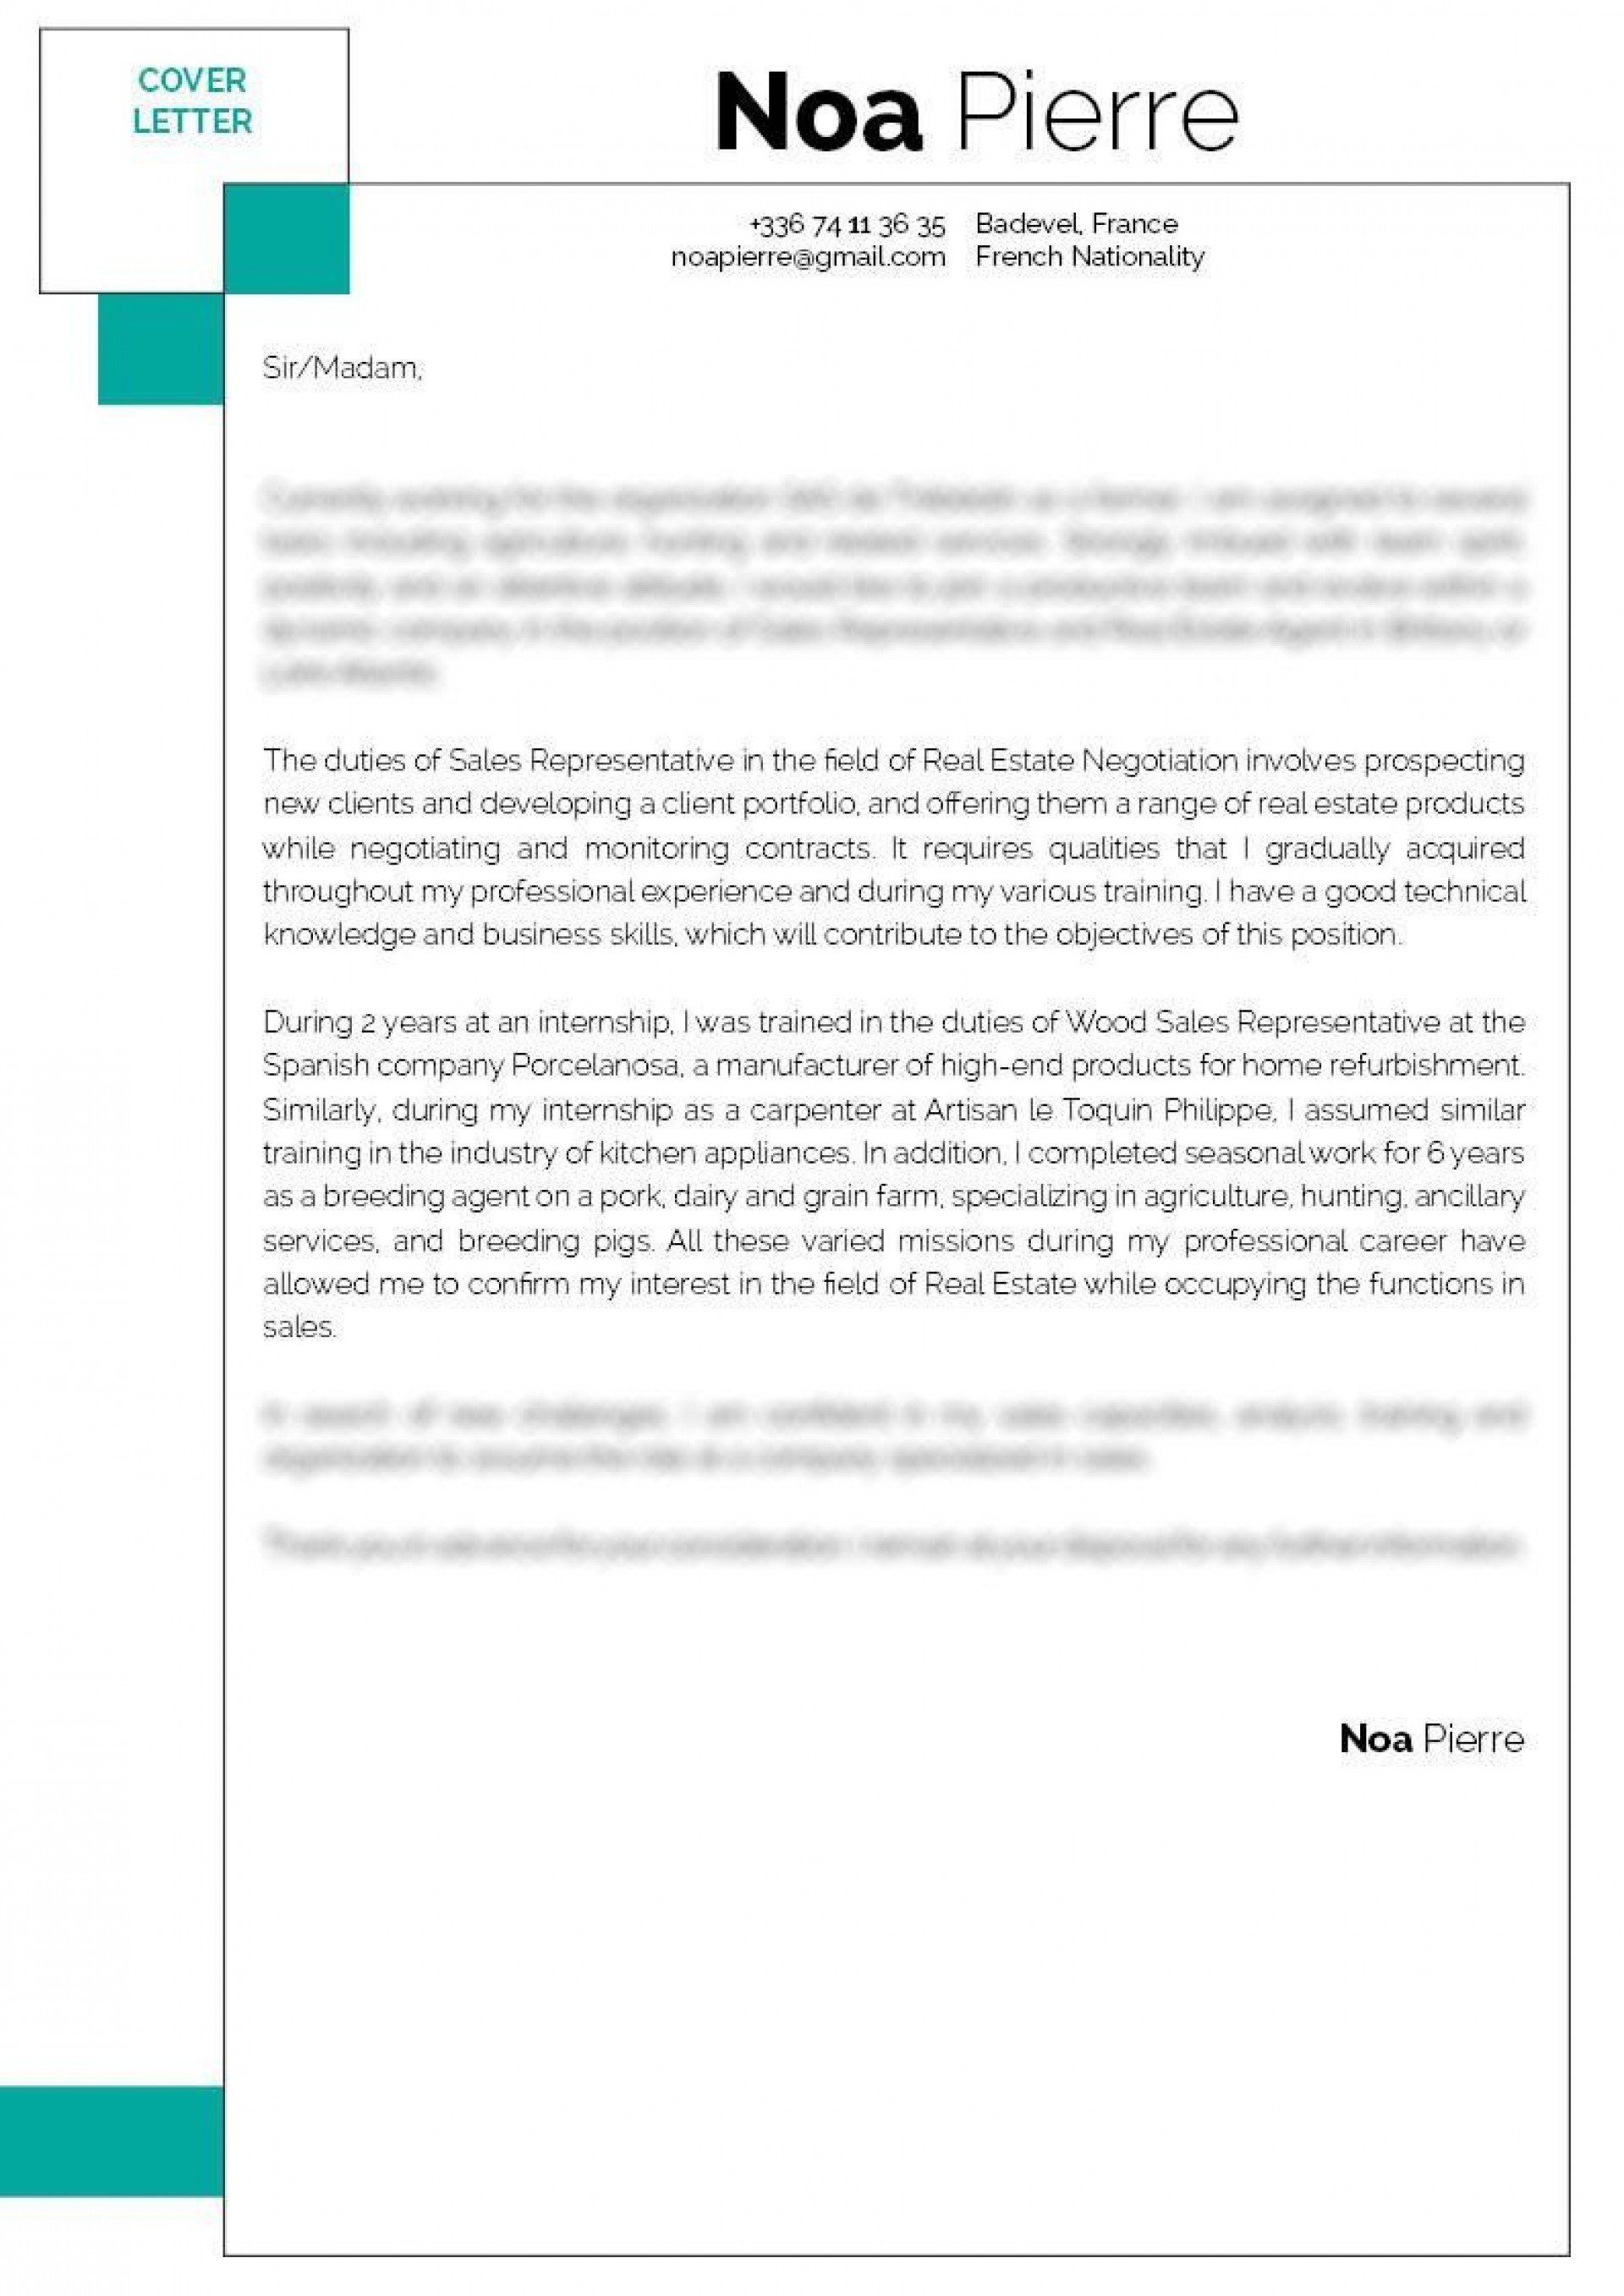 007 Singular Sale Cover Letter Template High Definition  Account Manager Word Rep1920